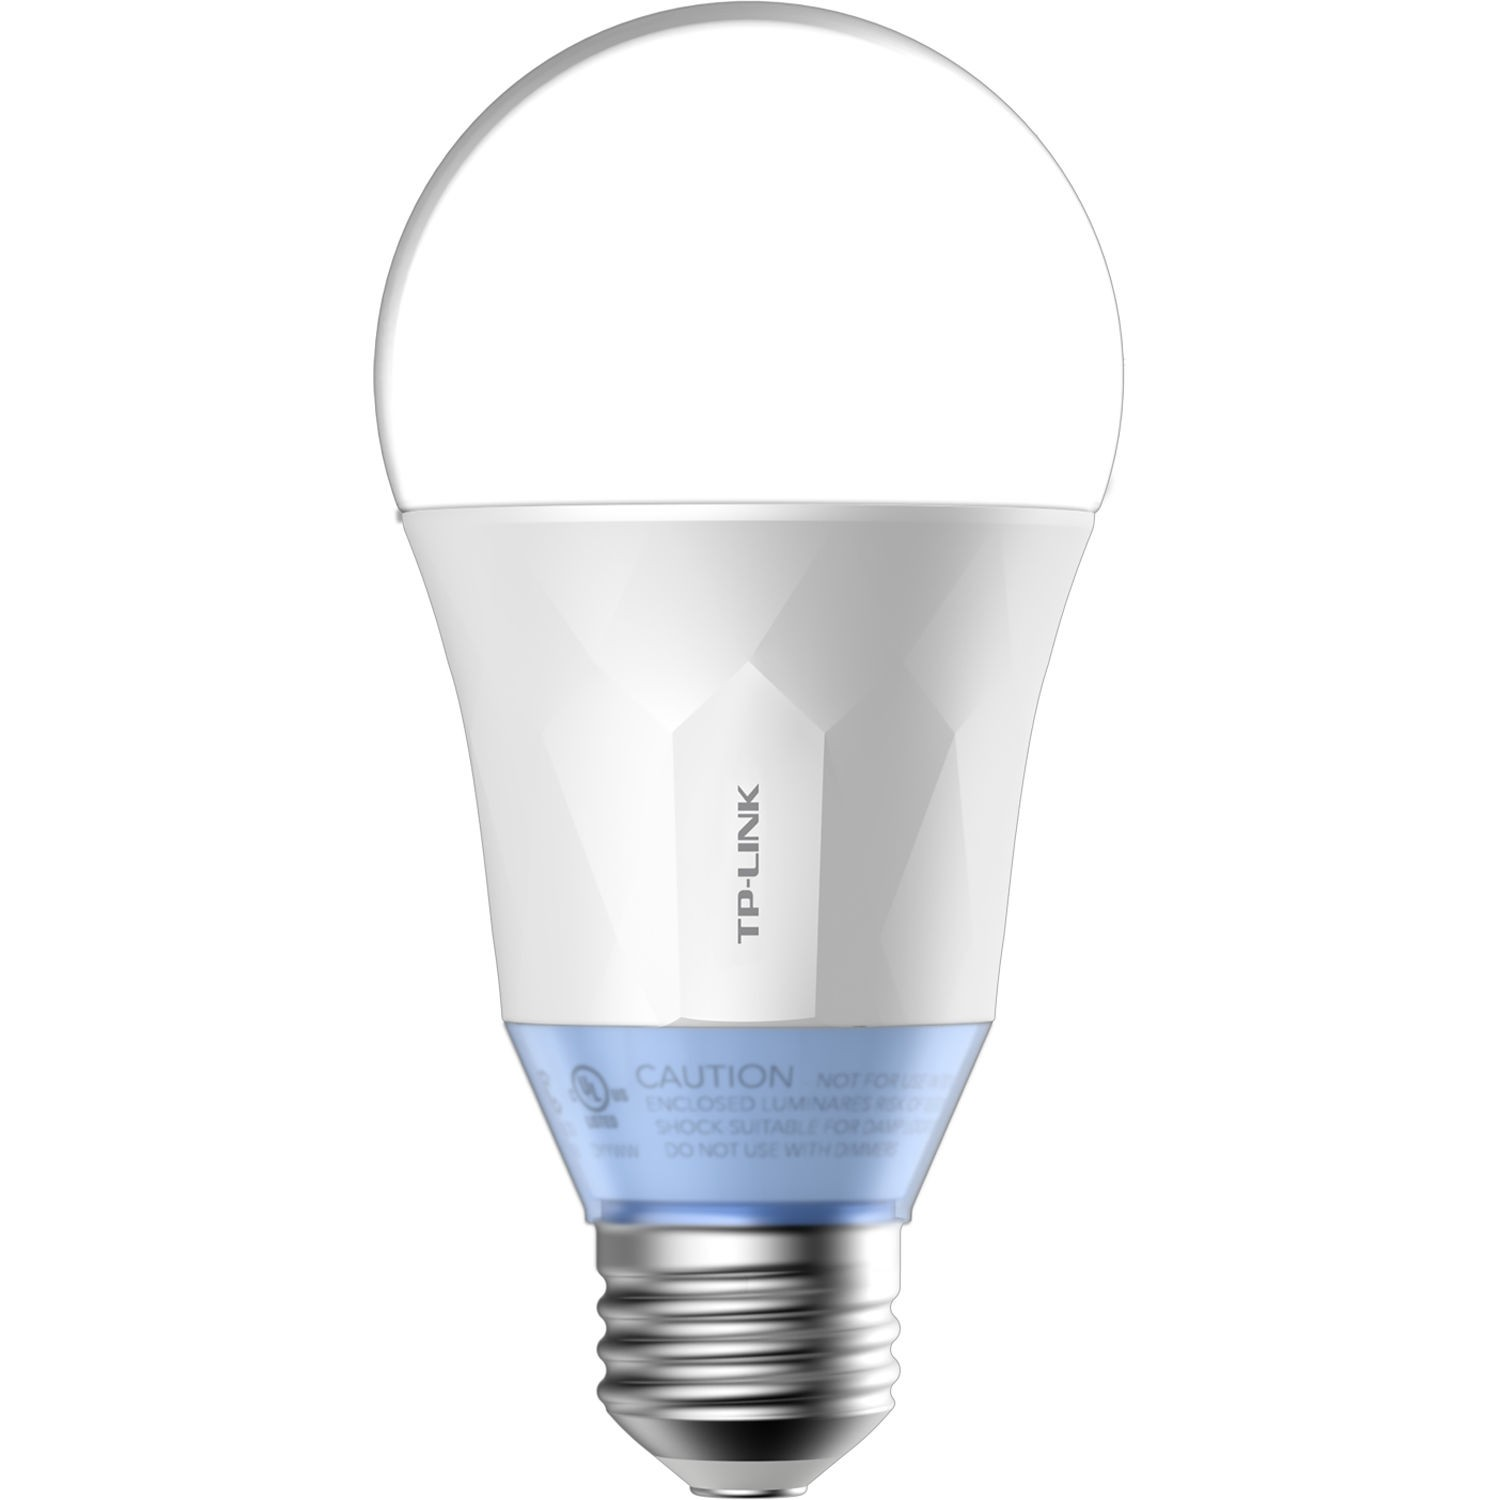 Lampada Led Com Luz Regulável Tp-link Smart Wi-fi Lb120 220v